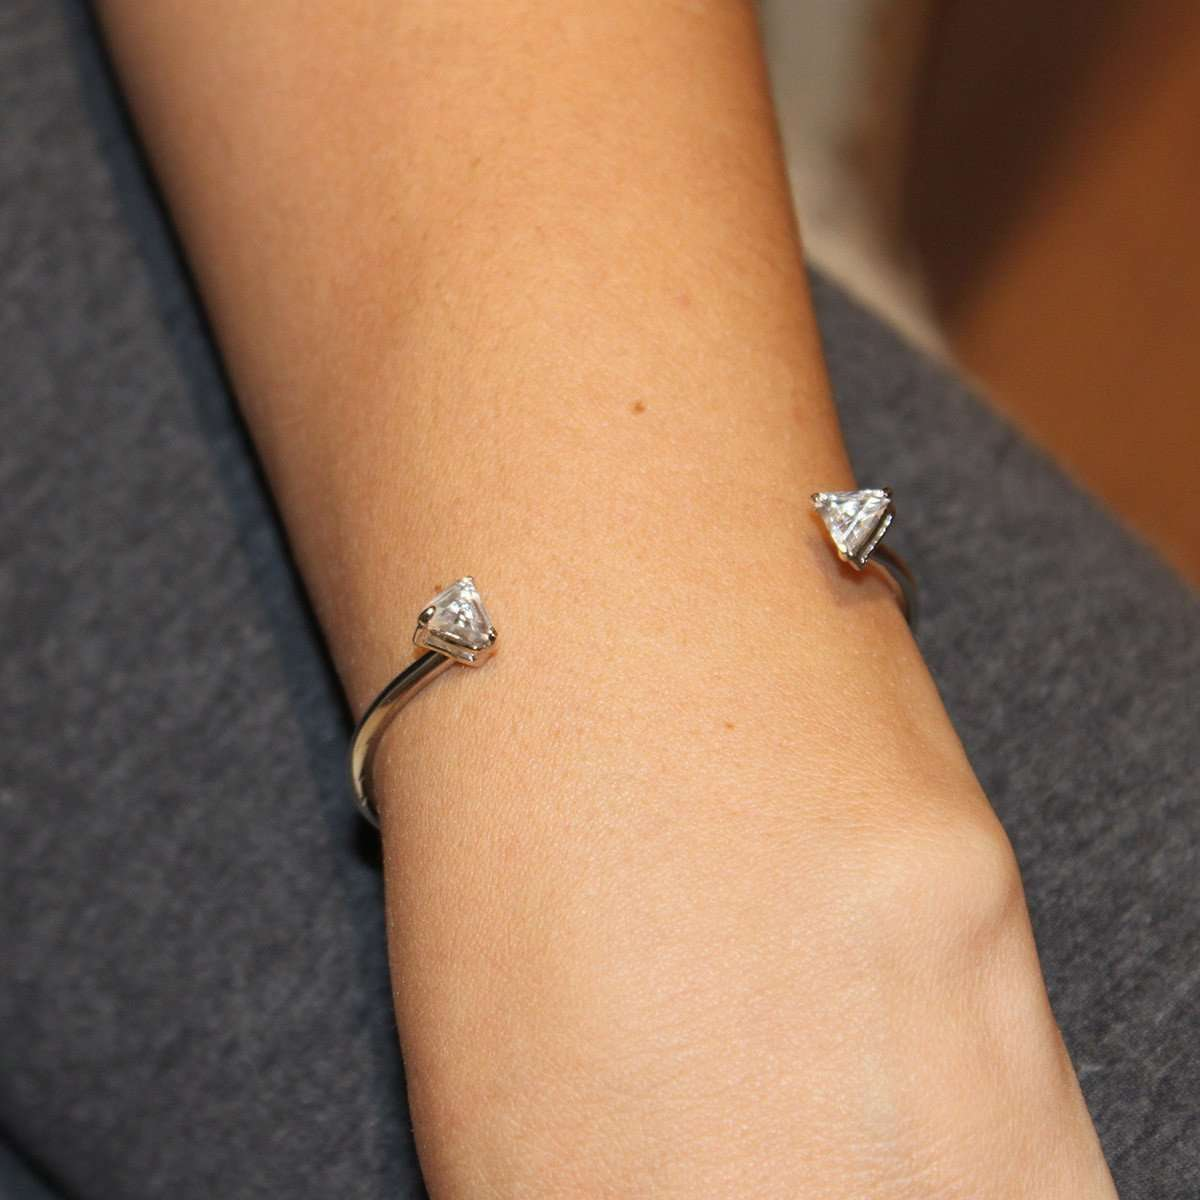 Crystal Triangle Bracelet-Isa Bagnoli-JewelStreet US